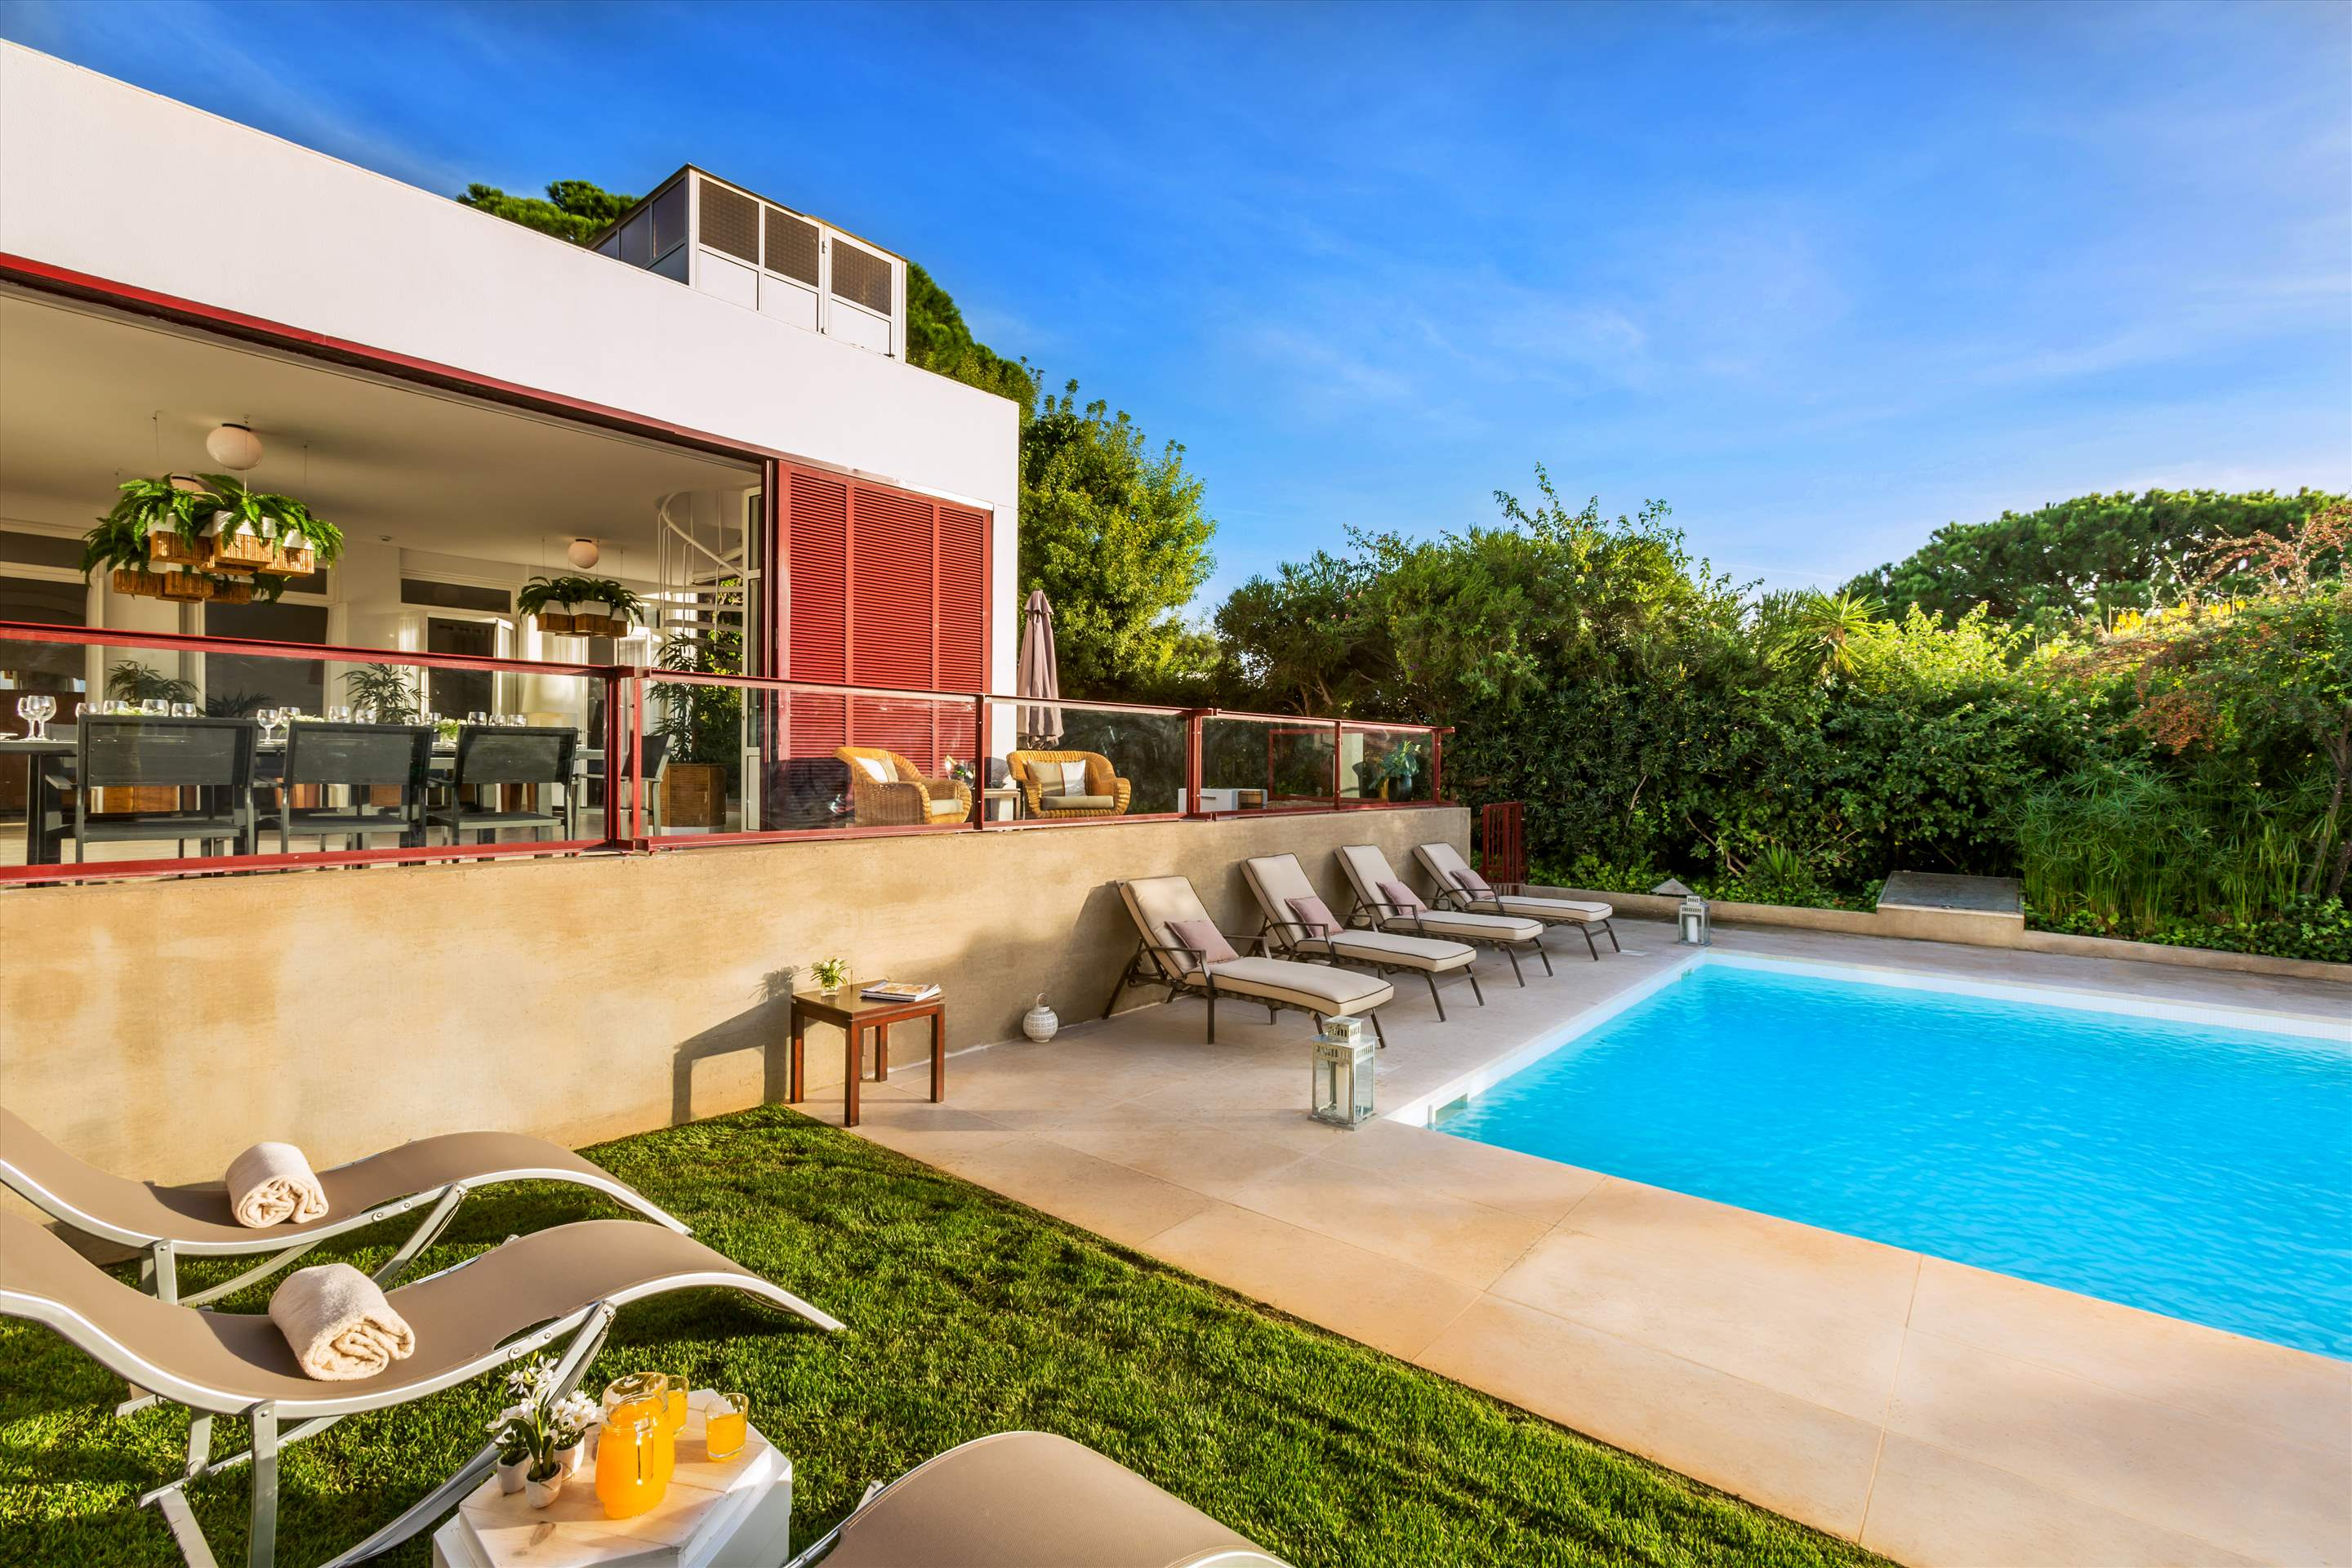 Villa Cegonha, 4 bedroom villa in Vale do Lobo, Algarve Photo #2